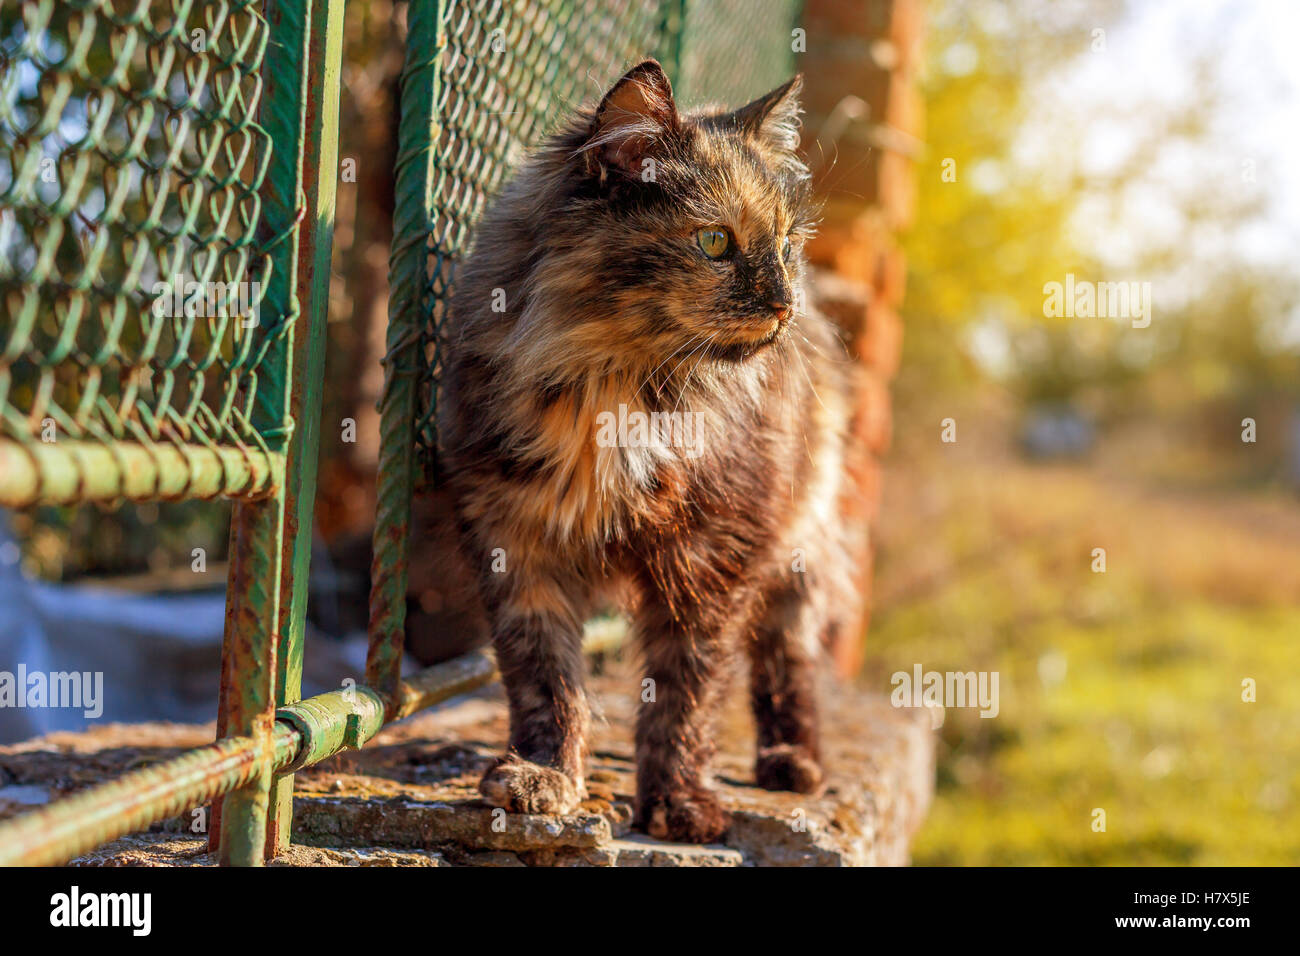 Cat siting on a fence at sunset - Stock Image